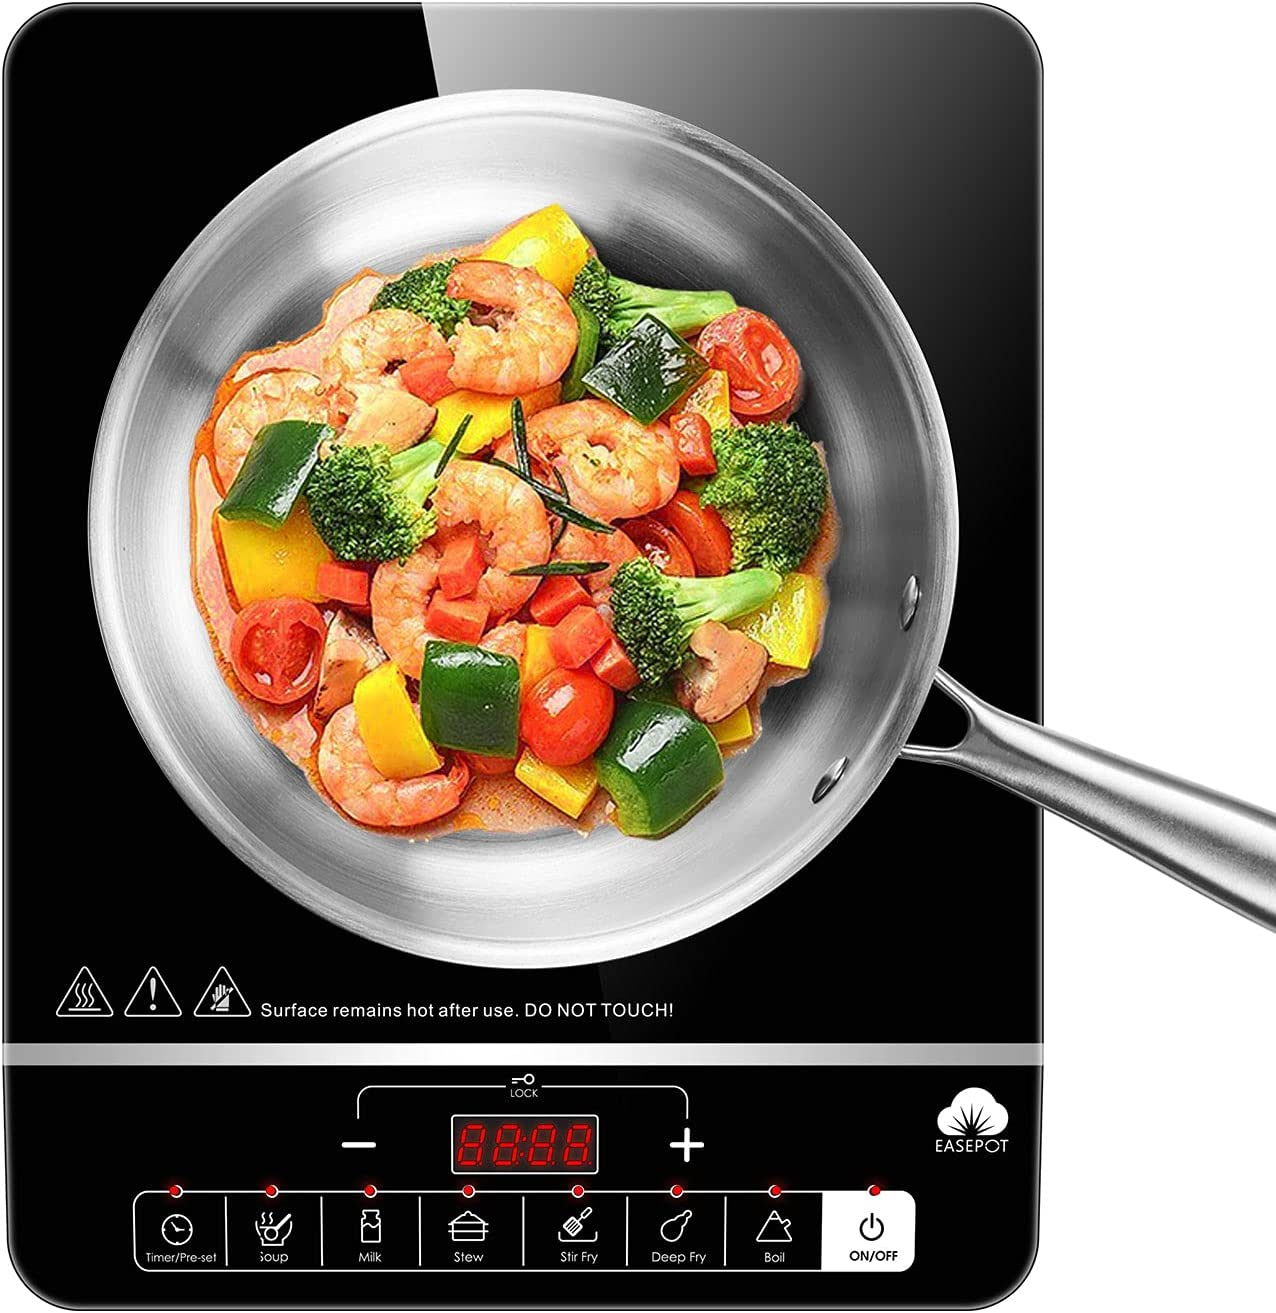 Induction Cooktop Easepot Portable C Time Max 55% OFF sale Cooker Countertop